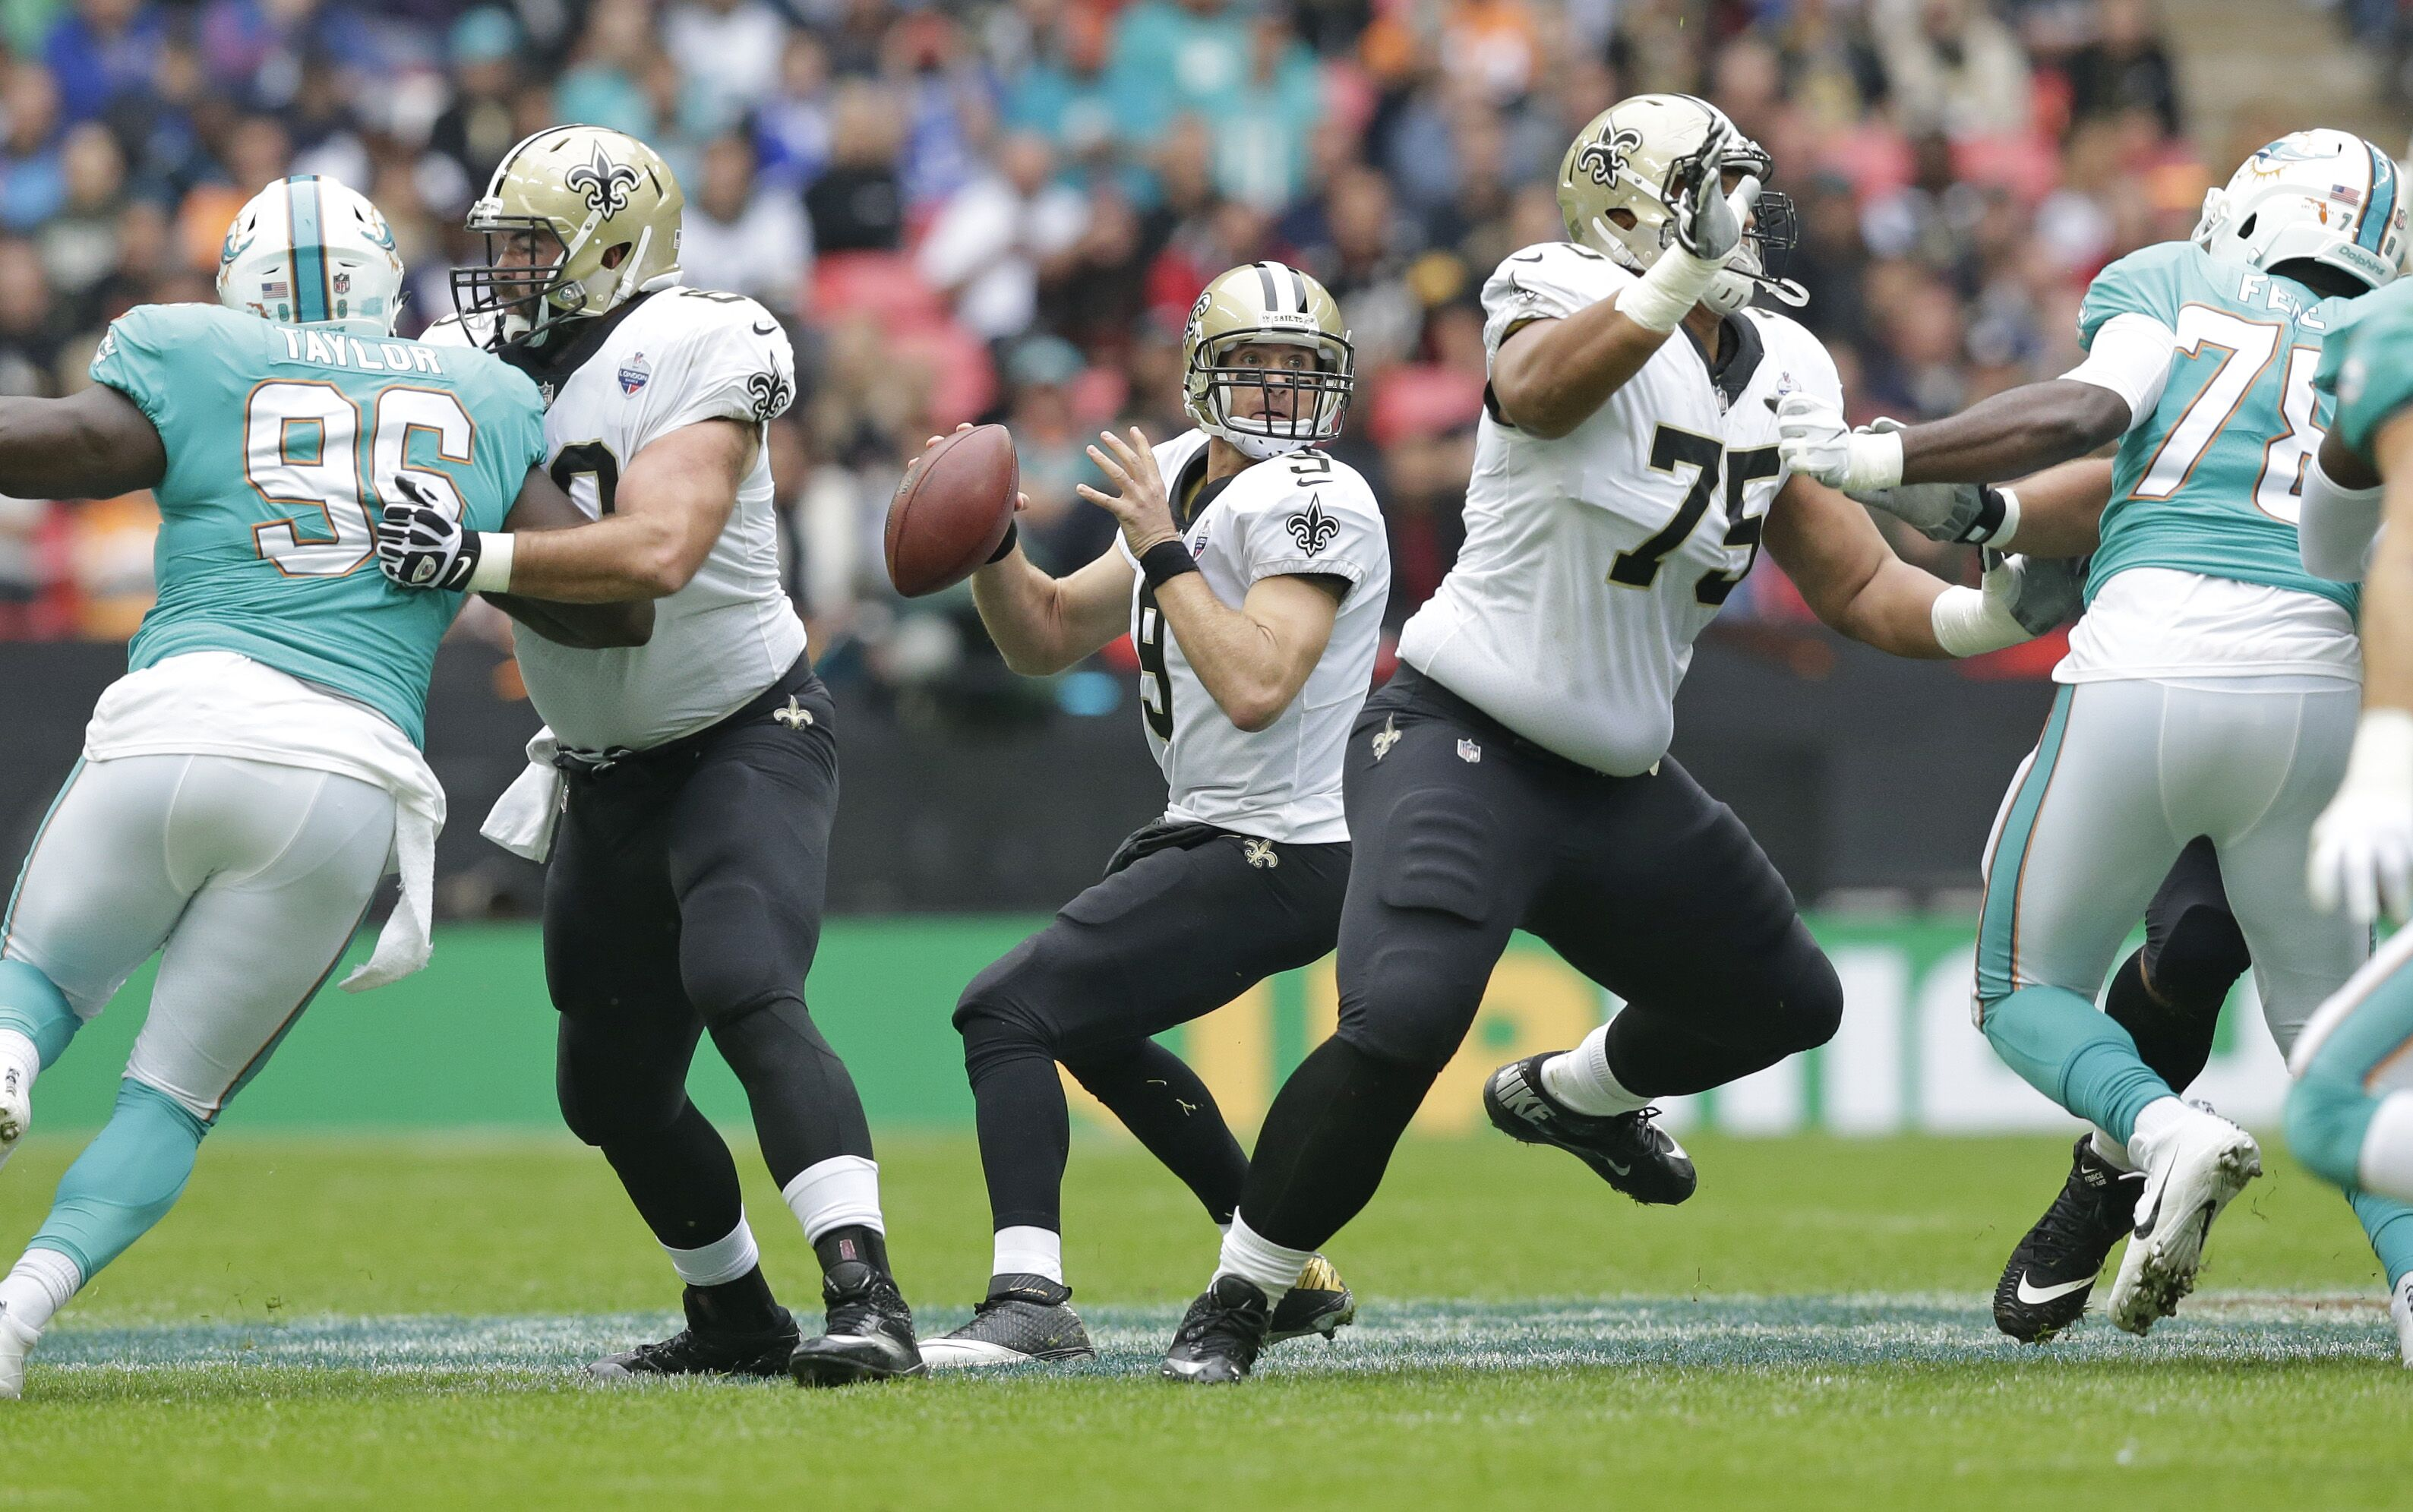 856239916-new-orleans-saints-v-miami-dolphins.jpg